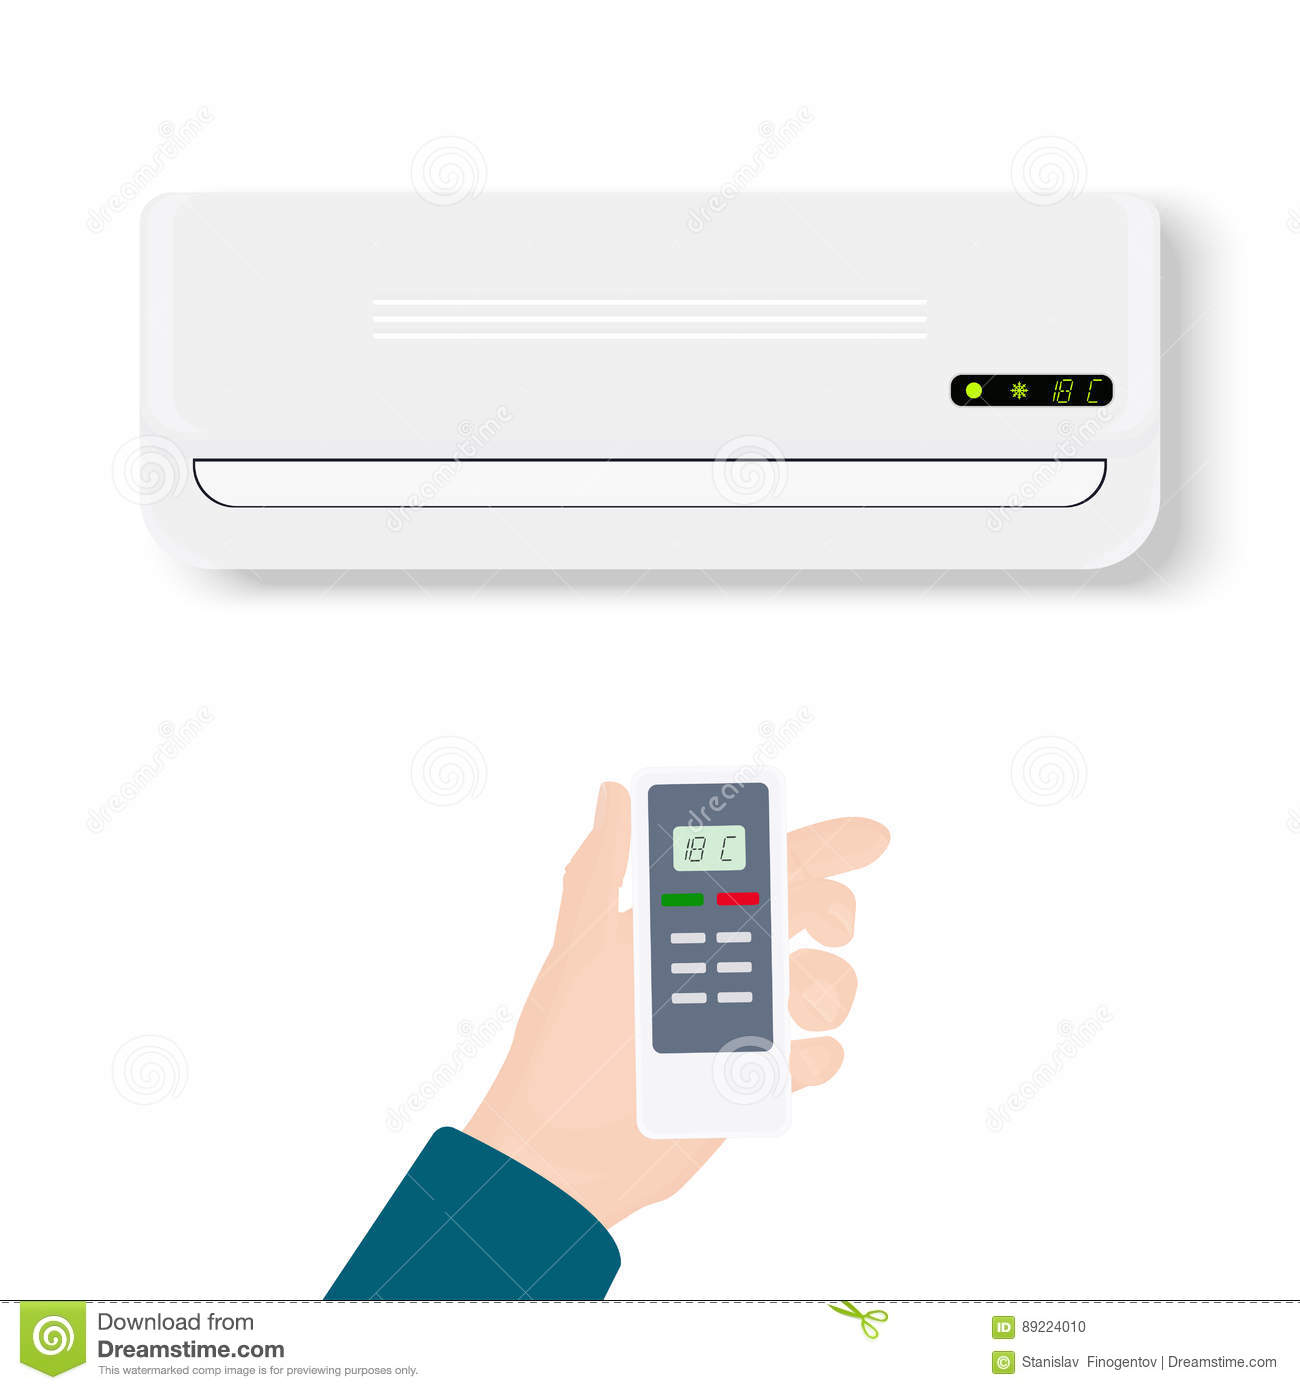 Split System Air Conditioner.Realistic Conditioner With Hand Holding Remote  Control. Vector Illustration Isolated On